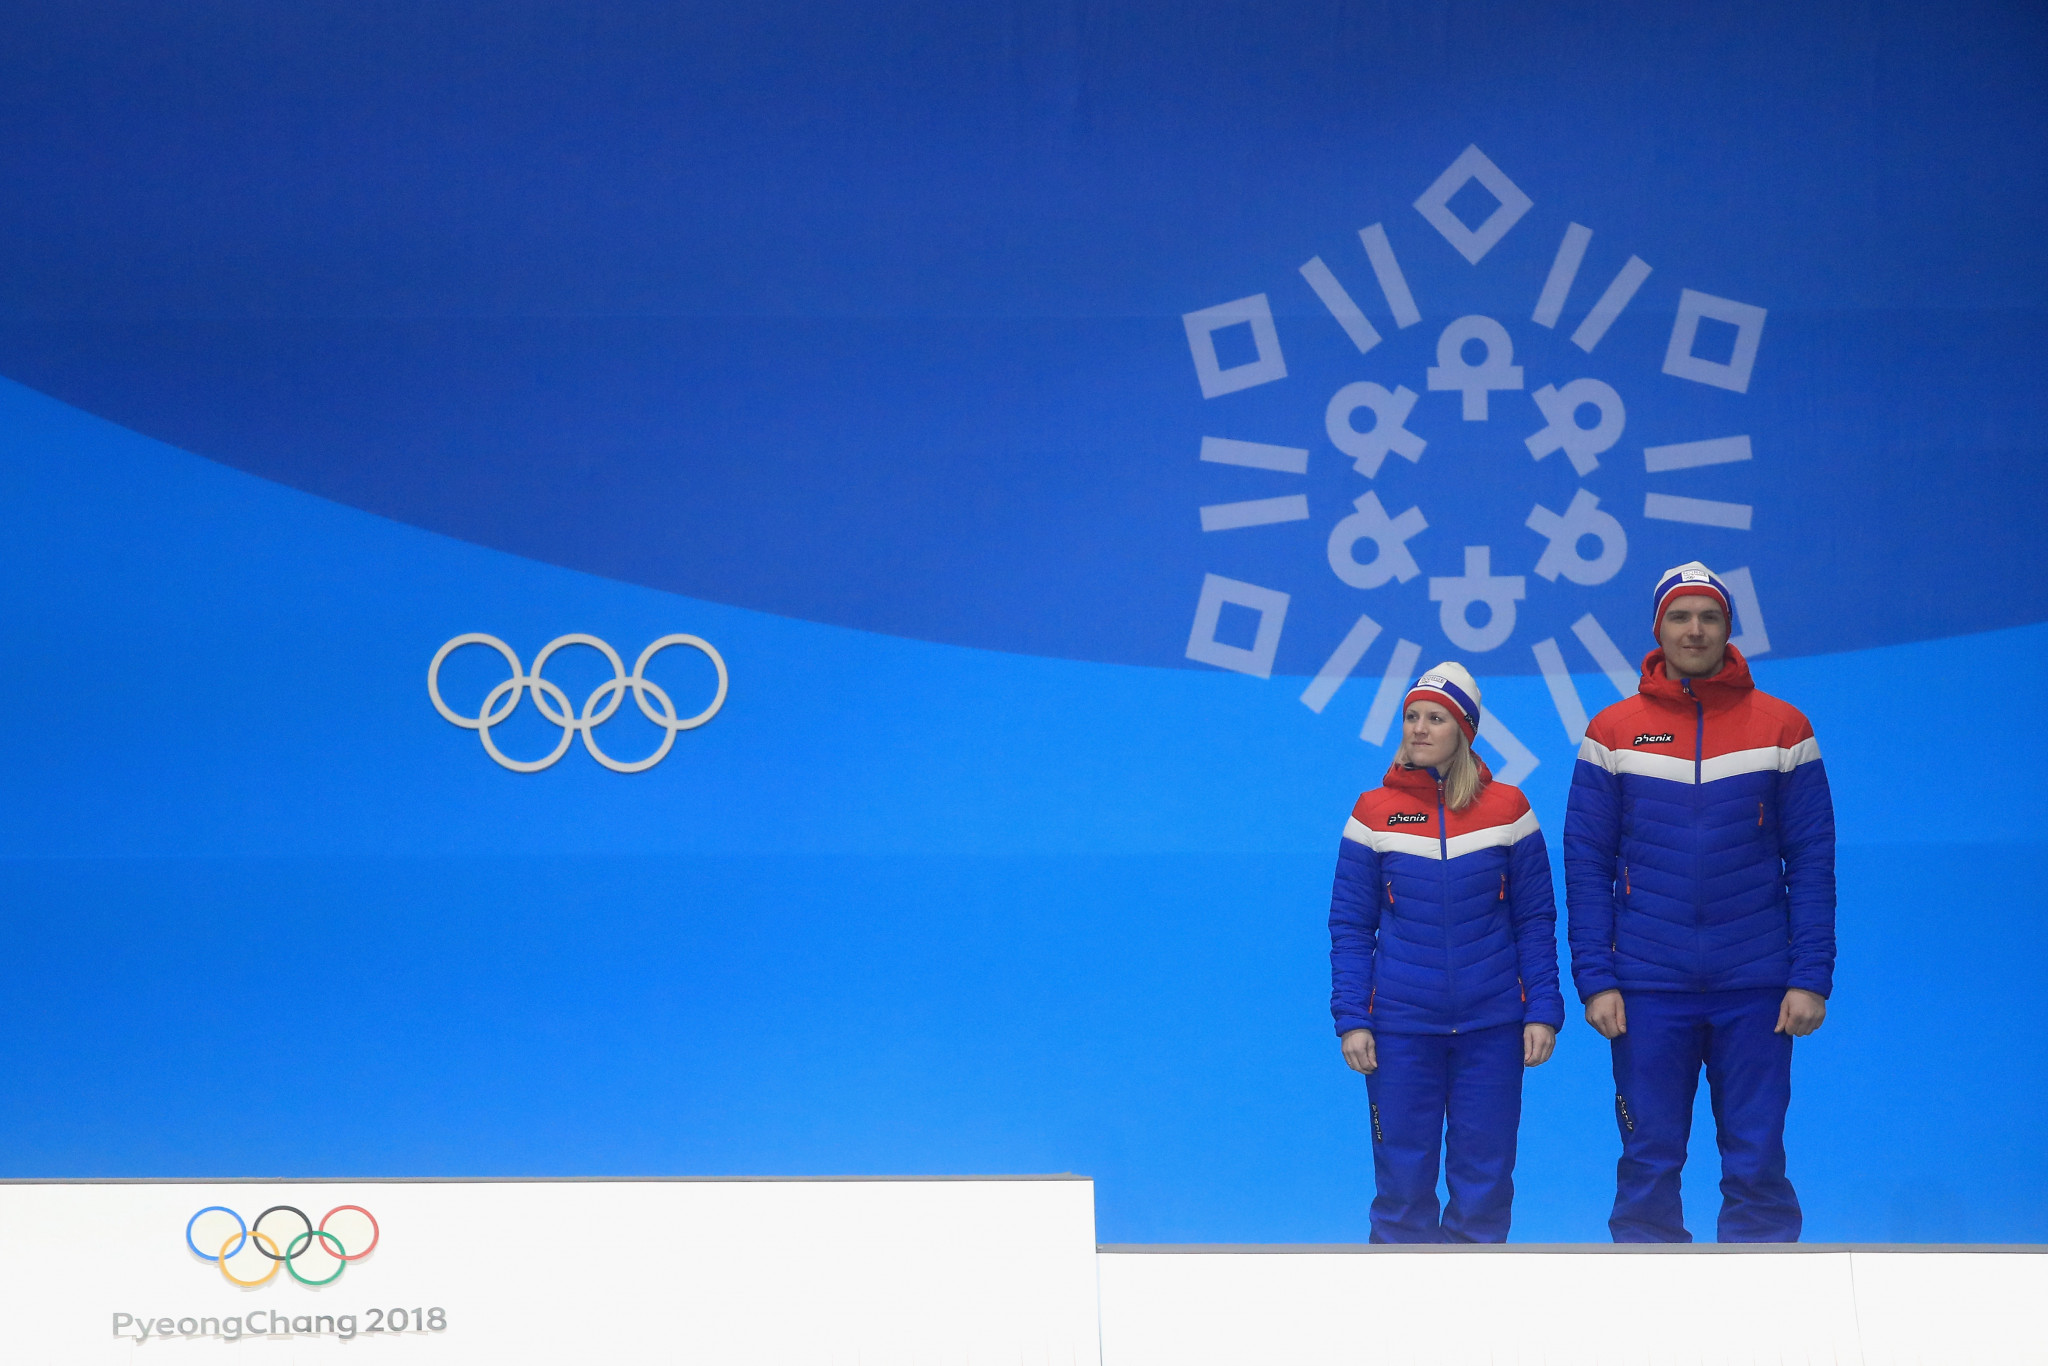 International Olympic Committee to appeal CAS decisions on Russians Alexander Legkov, Aleksandr Zubkov